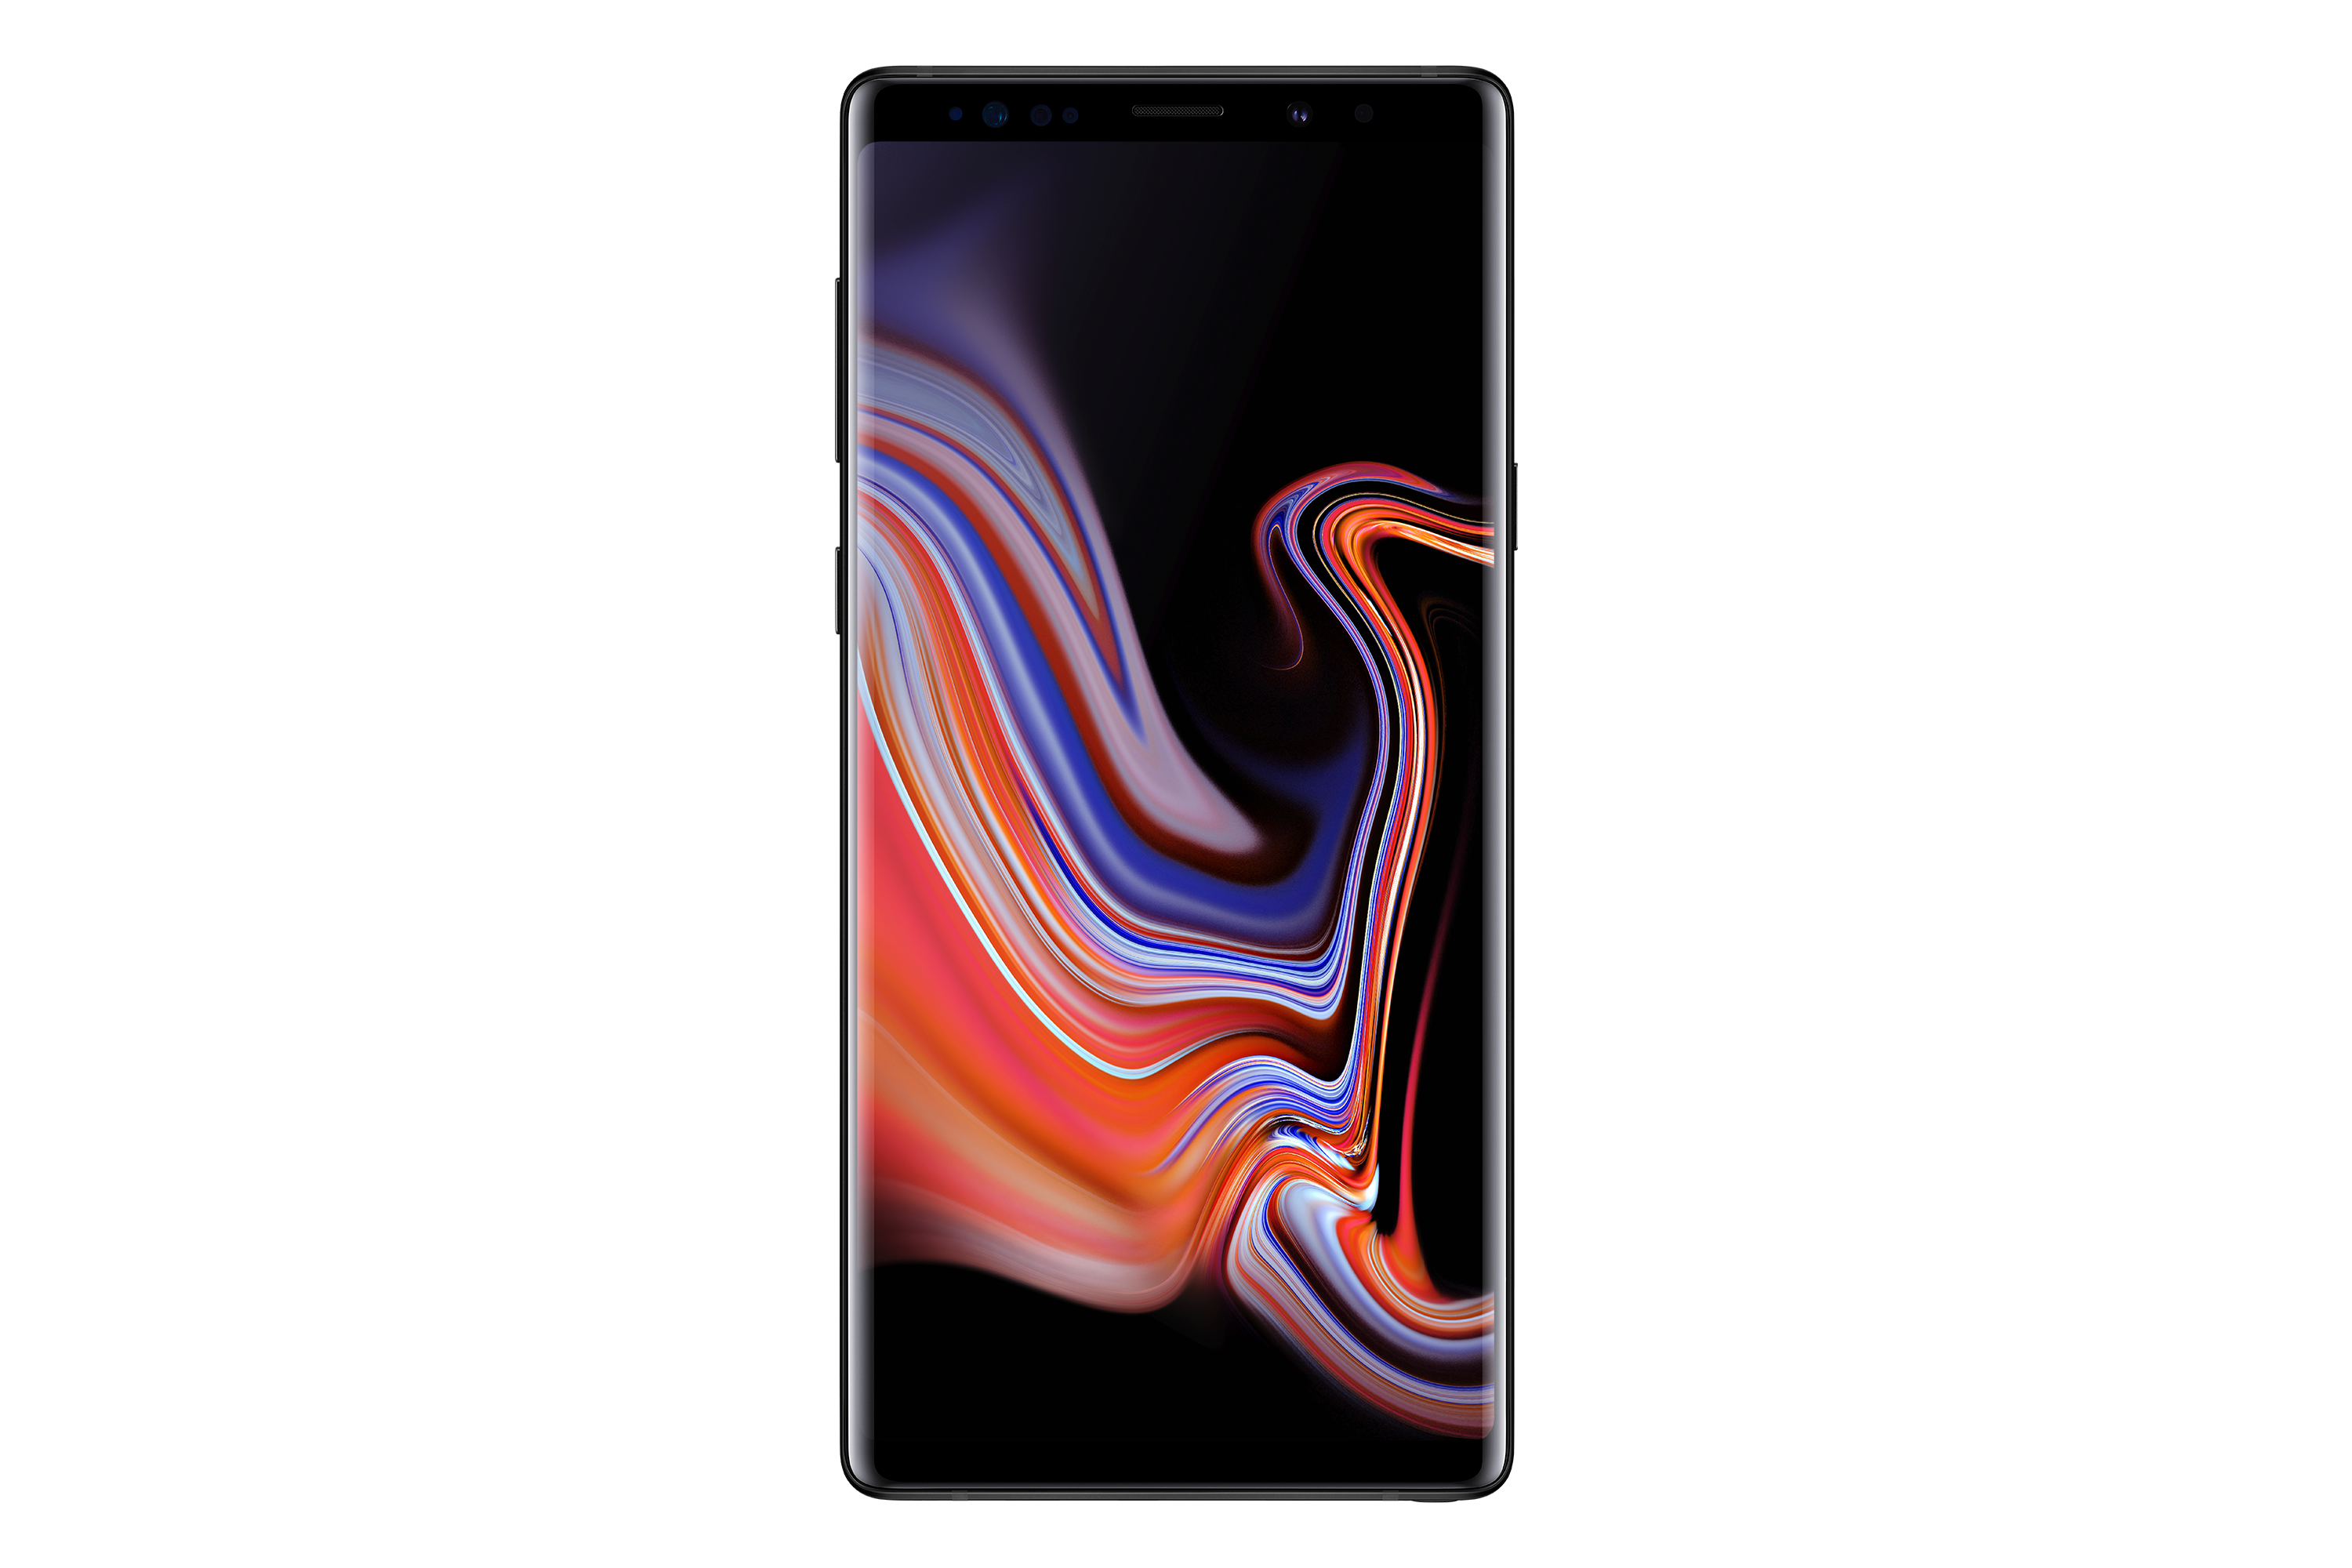 galaxy note9 assistance samsung fr rh samsung com Samsung Galaxy Note 3 Samsung Galaxy Note 5